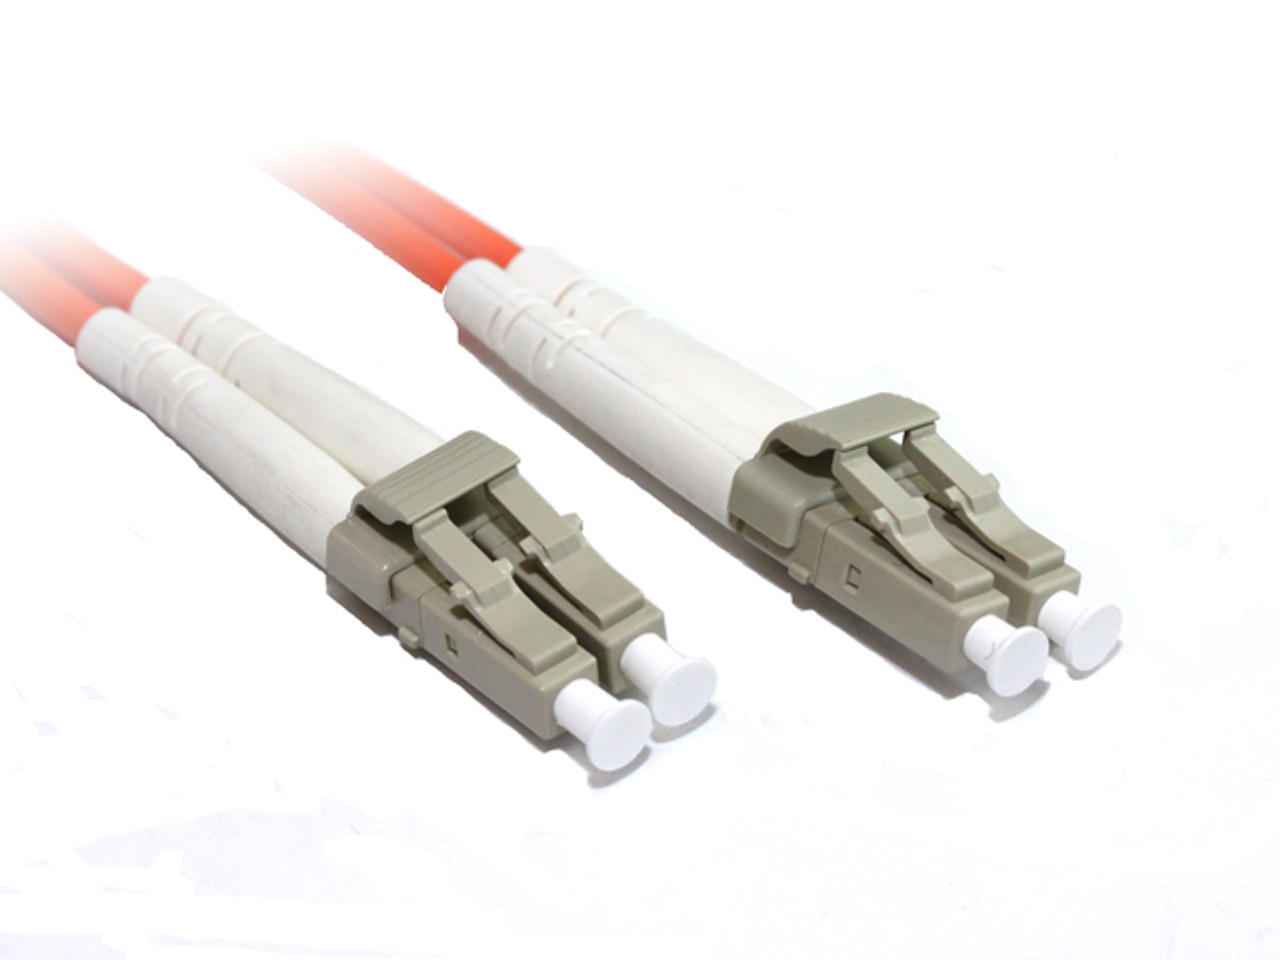 Product image for 10M LC-LC OM2 50/125 Multimode Duplex Fibre Optic Cable | CX Computer Superstore